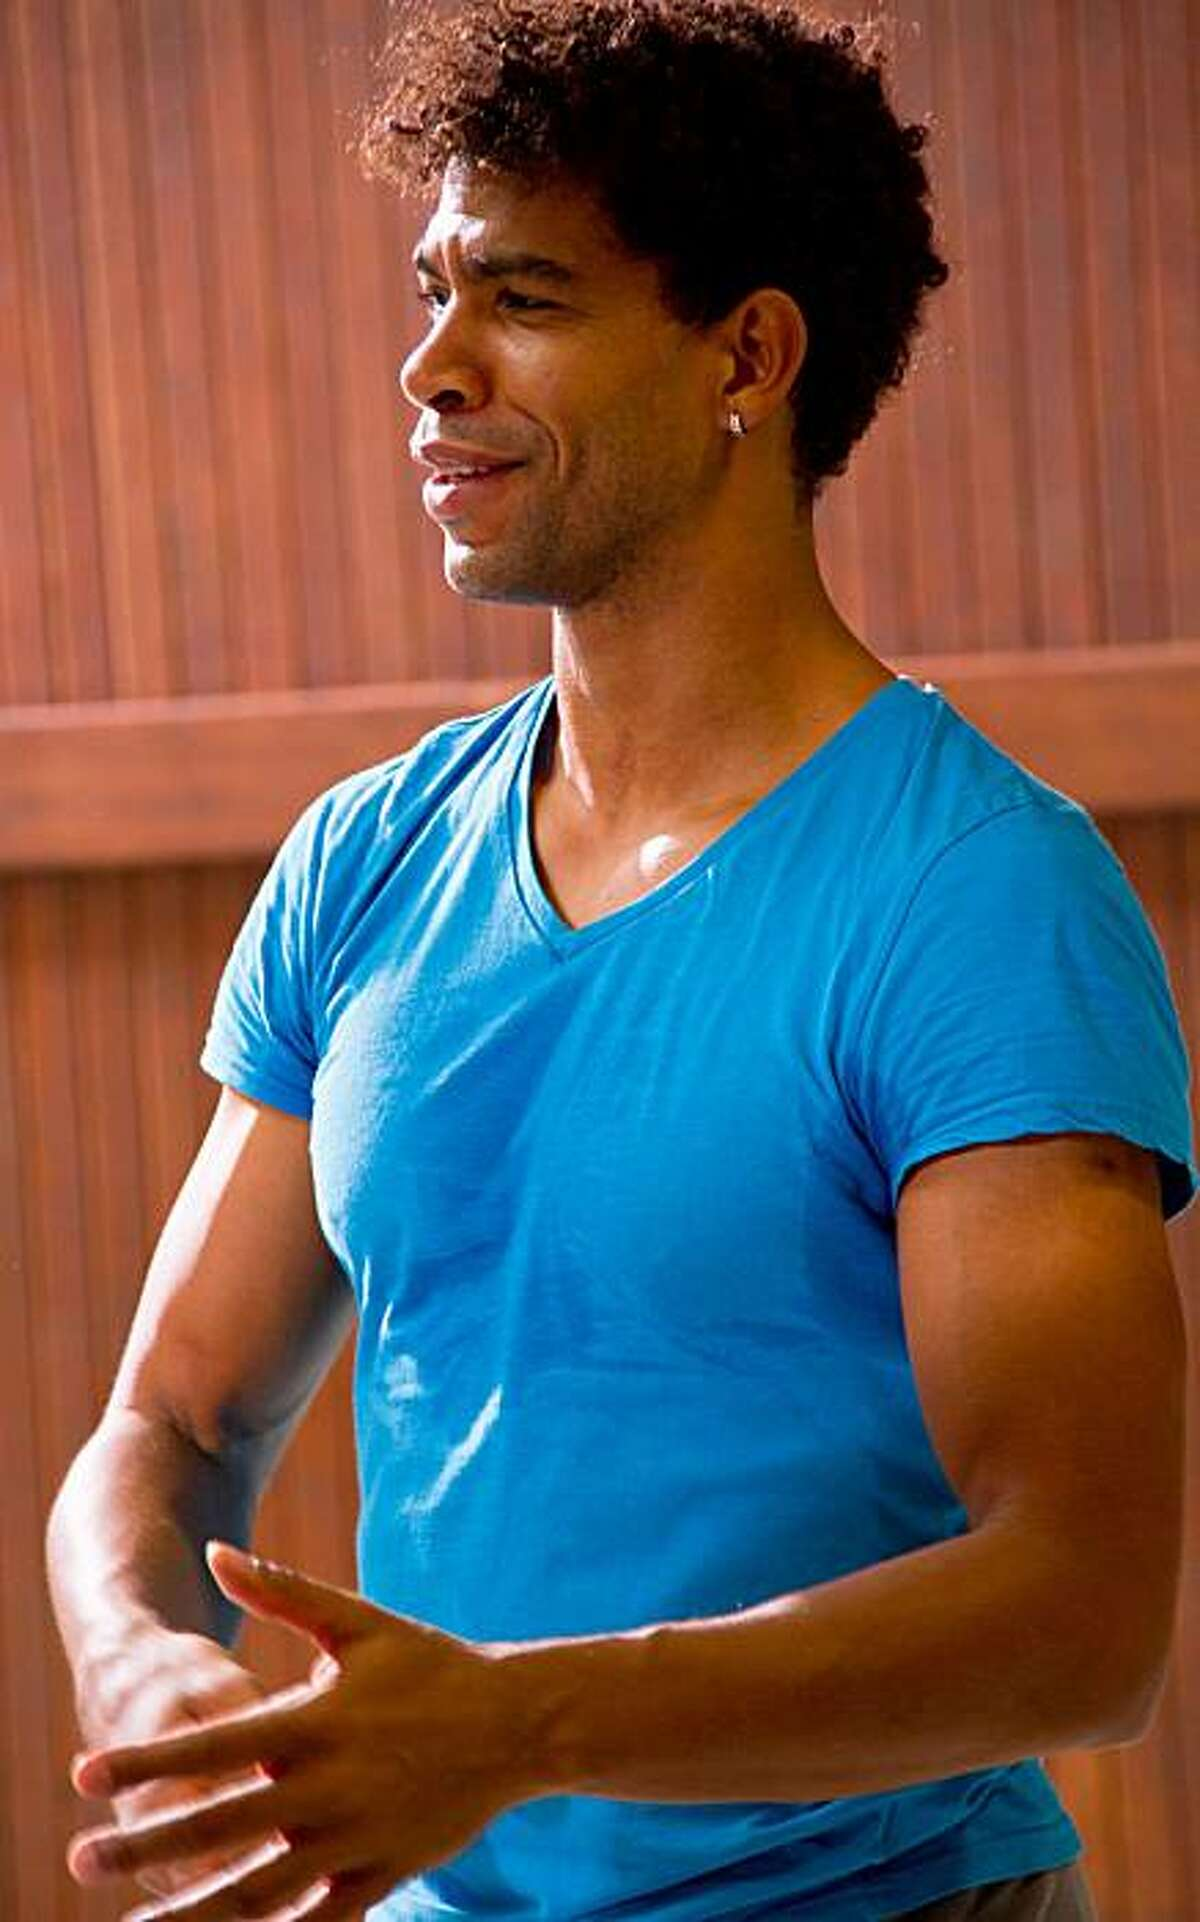 Here are some shots of Carlos Acosta in rehearsal for SWAN LAKE at Ballet San Jose. . All photos are by John Gerbetz